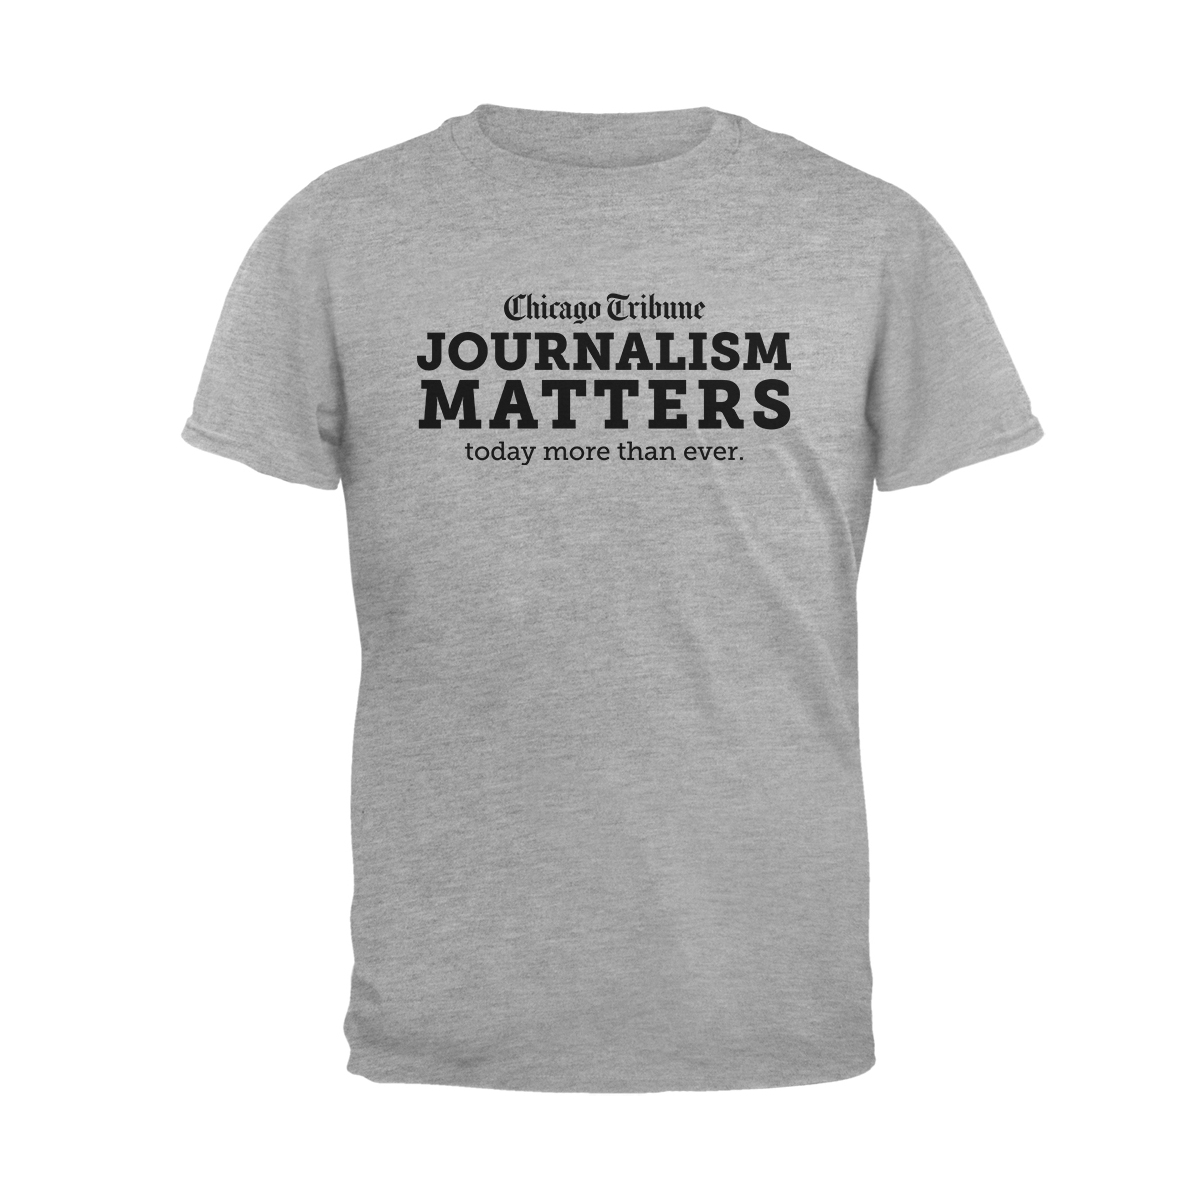 Chicago Tribune Journalism Matters T-Shirt